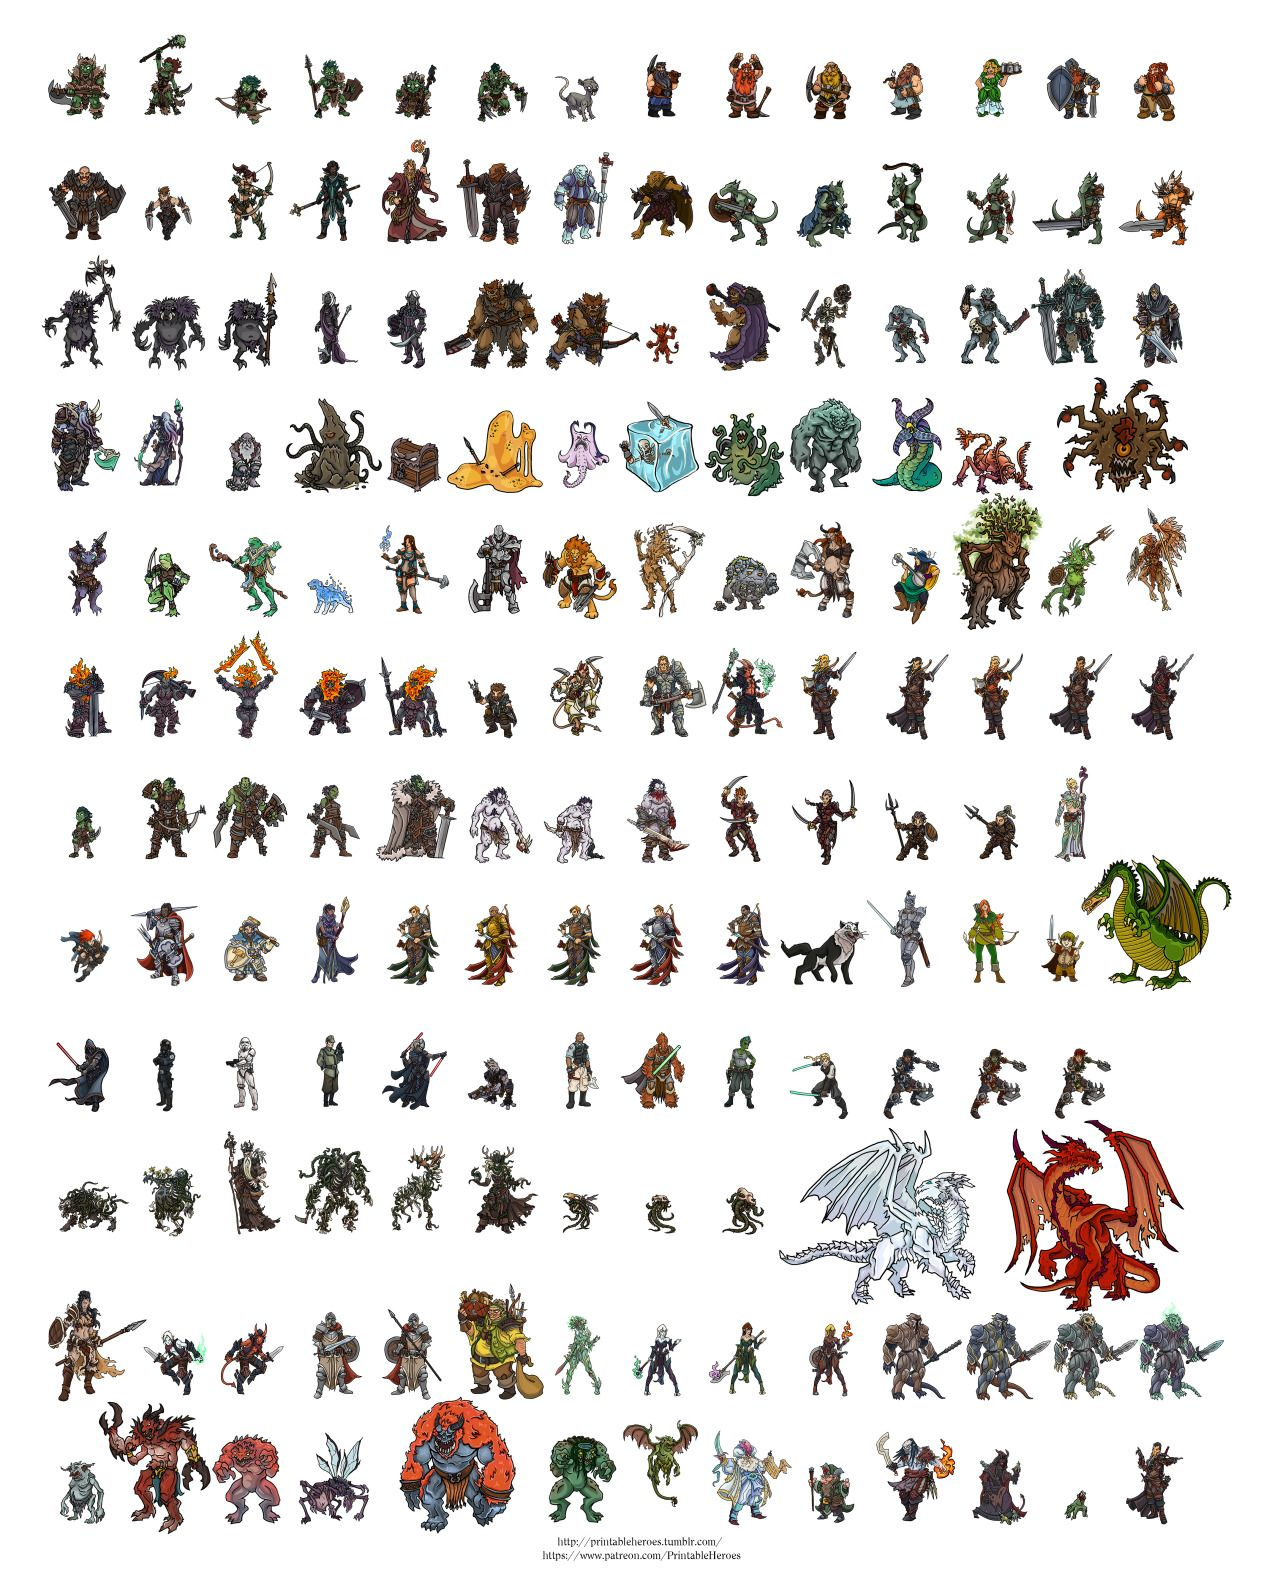 It is an image of Monster Printable Paper Miniatures